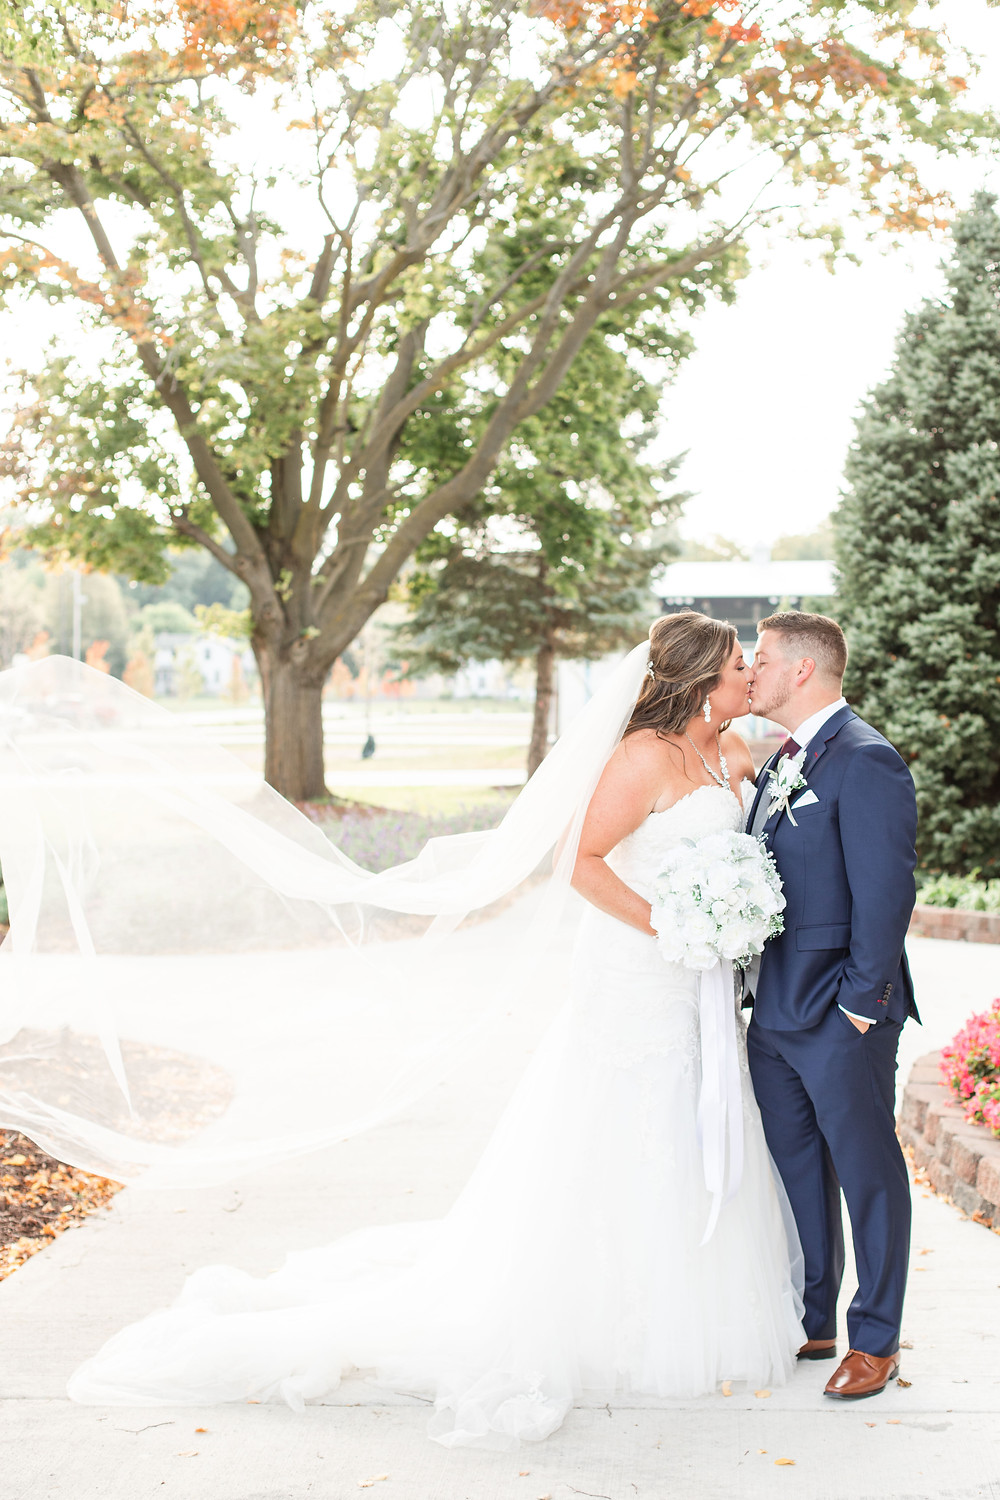 Bride and groom cute couple wedding American 1 event center Jackson michigan kissing